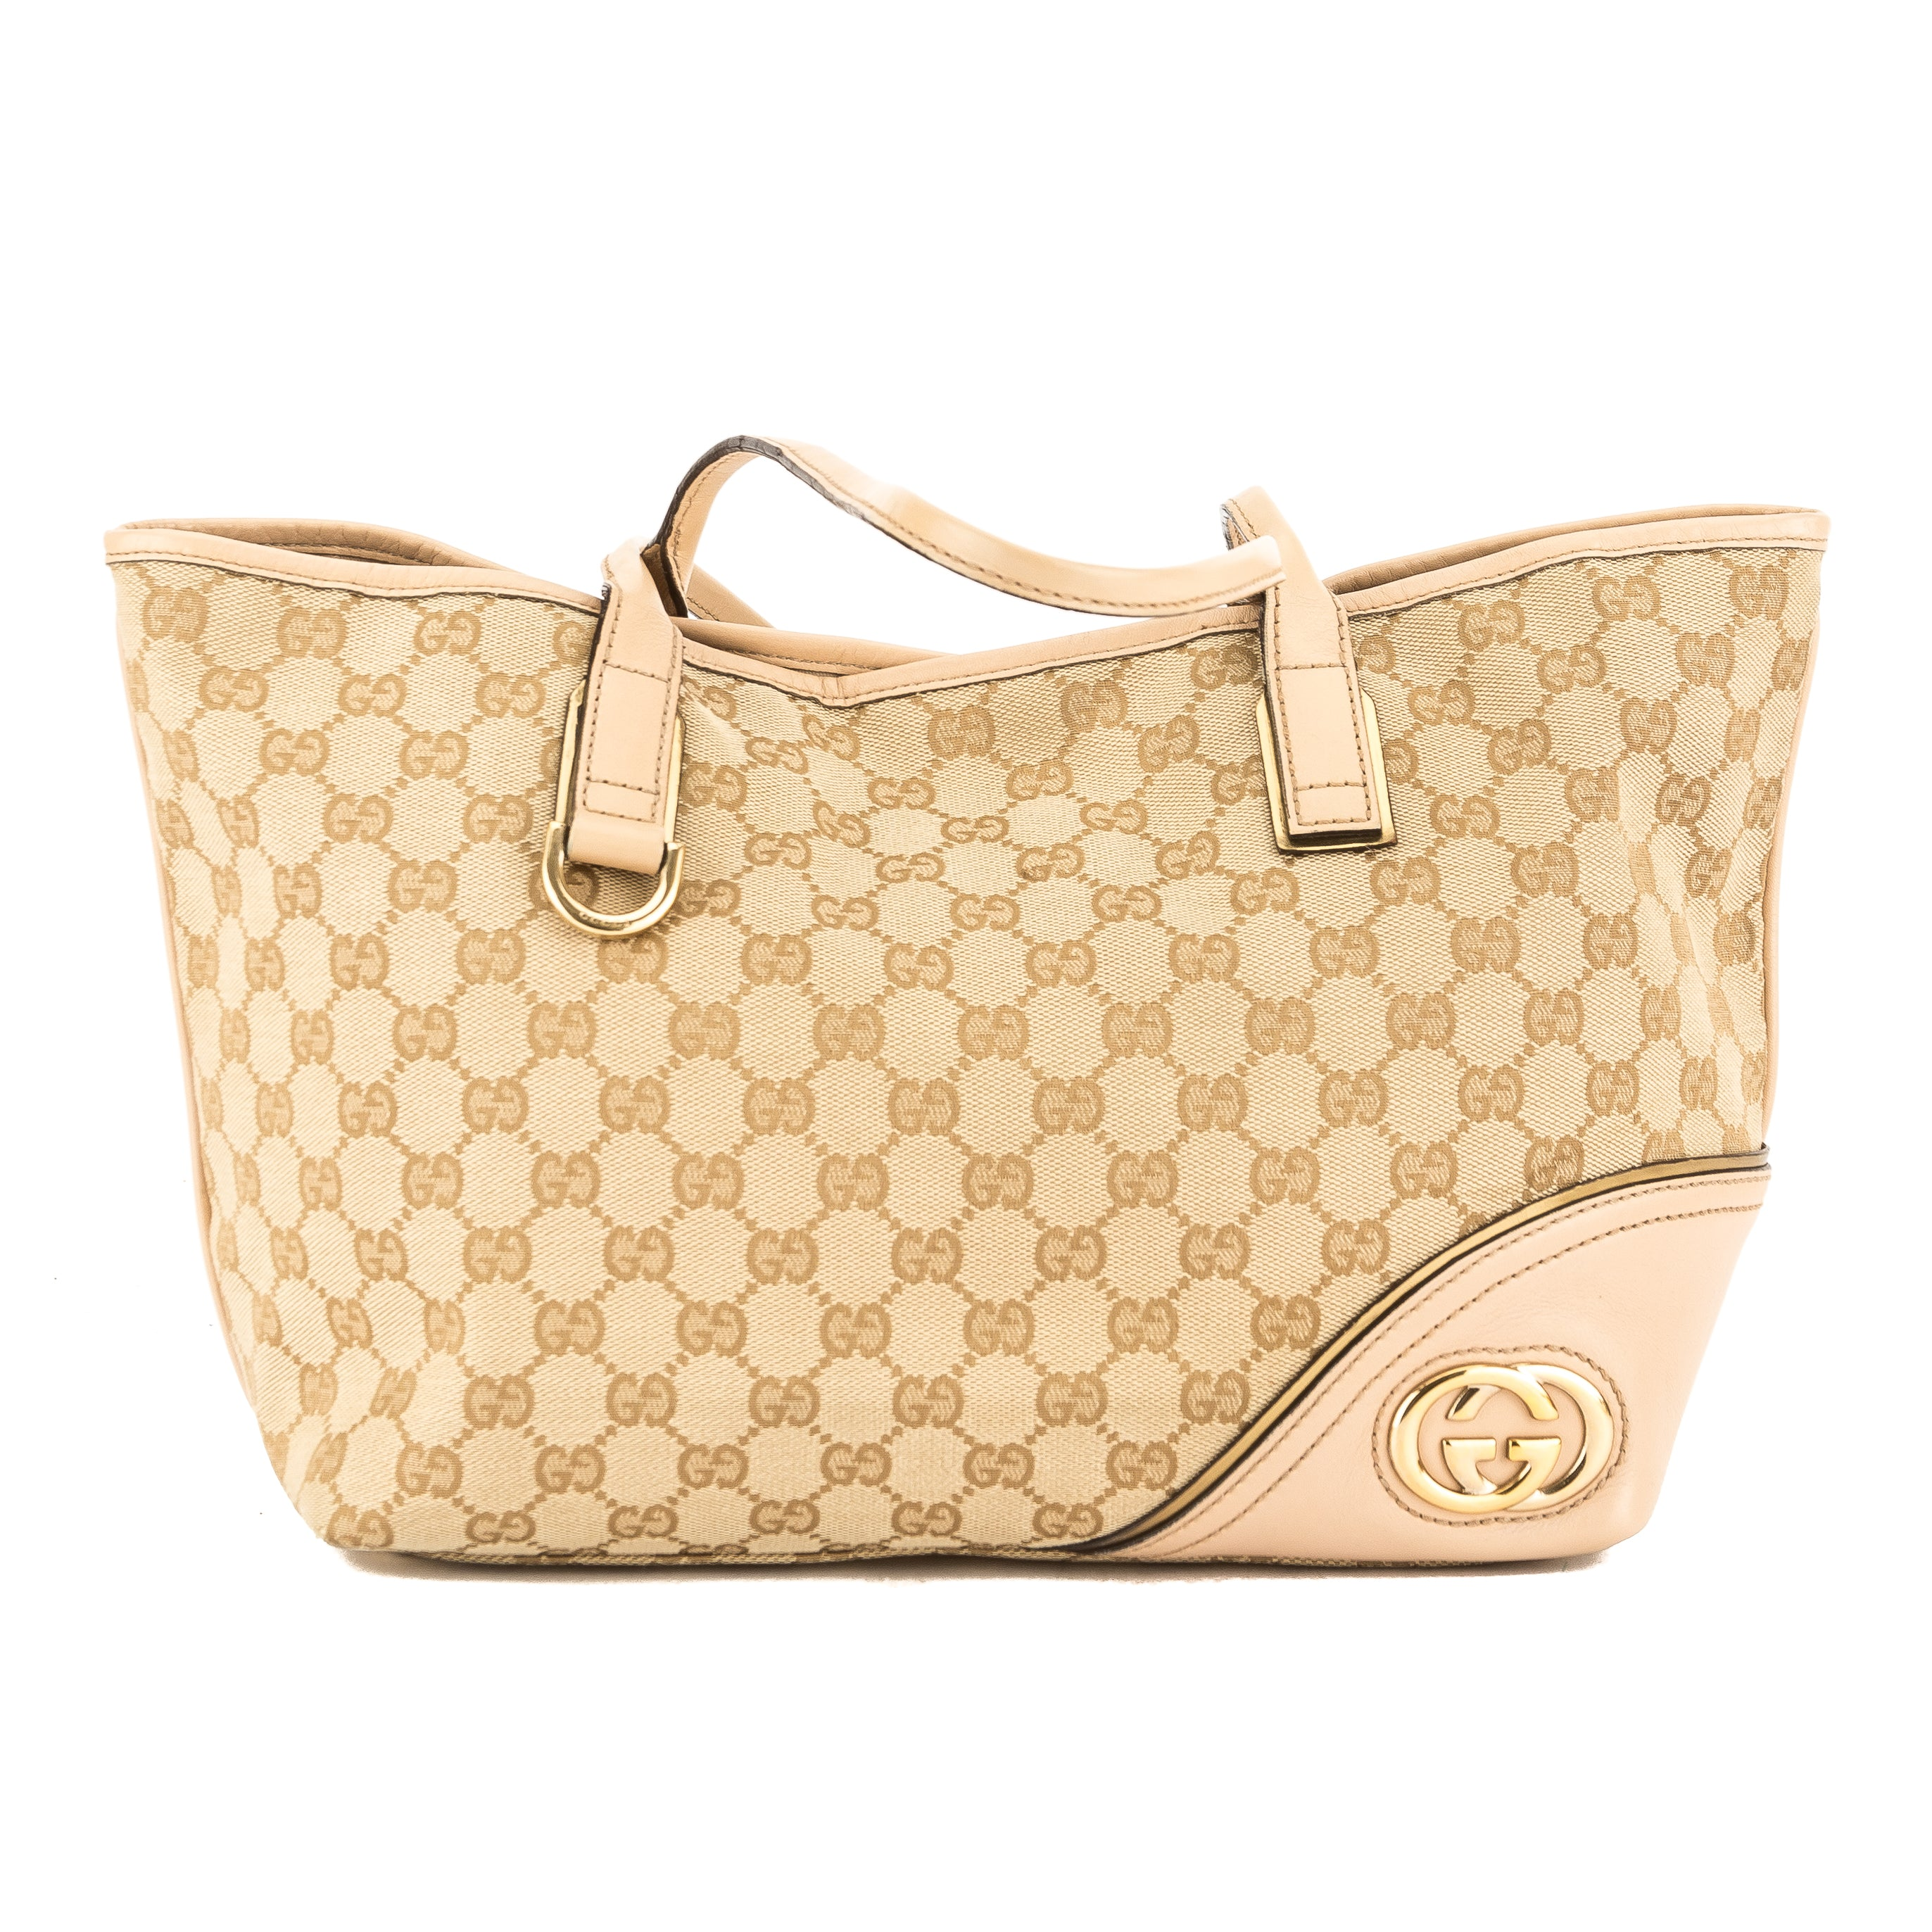 635c5a4727f9 Gucci Beige Leather GG Jacquard Canvas Guccisima Britt Tote (Pre ...